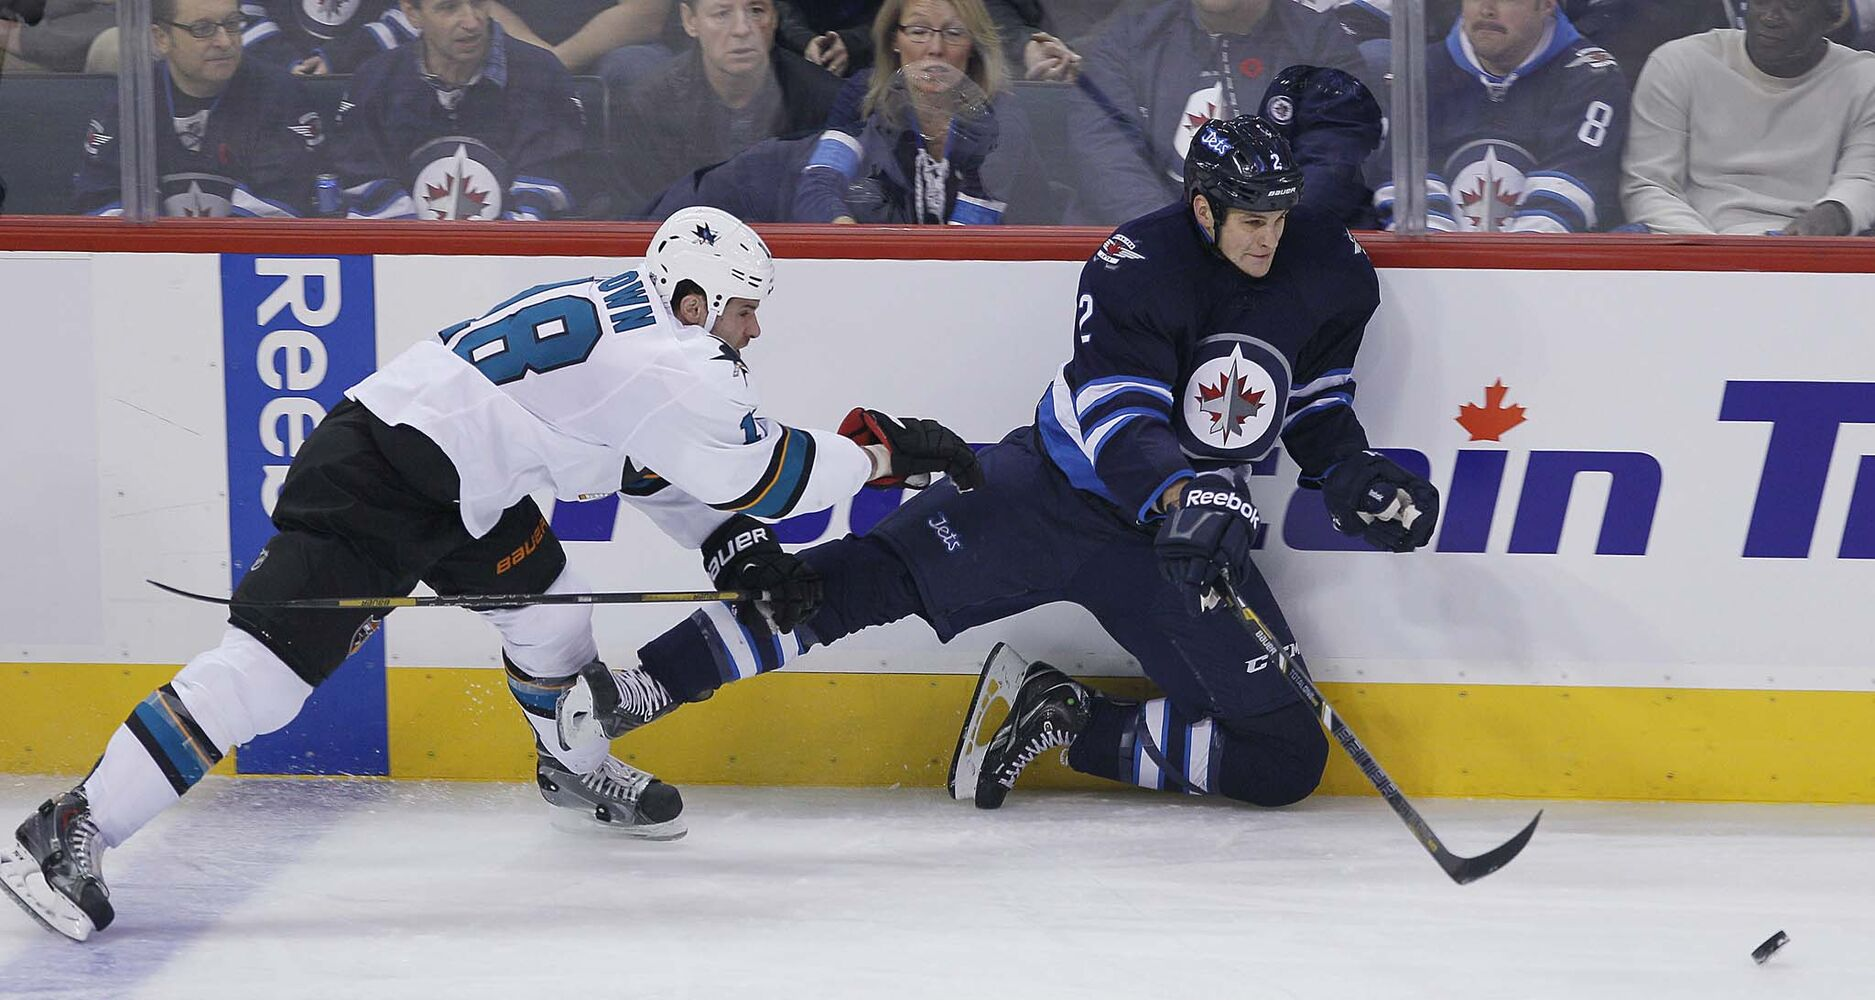 San Jose Sharks' Mike Brown (18) checks Winnipeg Jets' Adam Pardy (2) during the first period. (JOHN WOODS / WINNIPEG FREE PRESS)